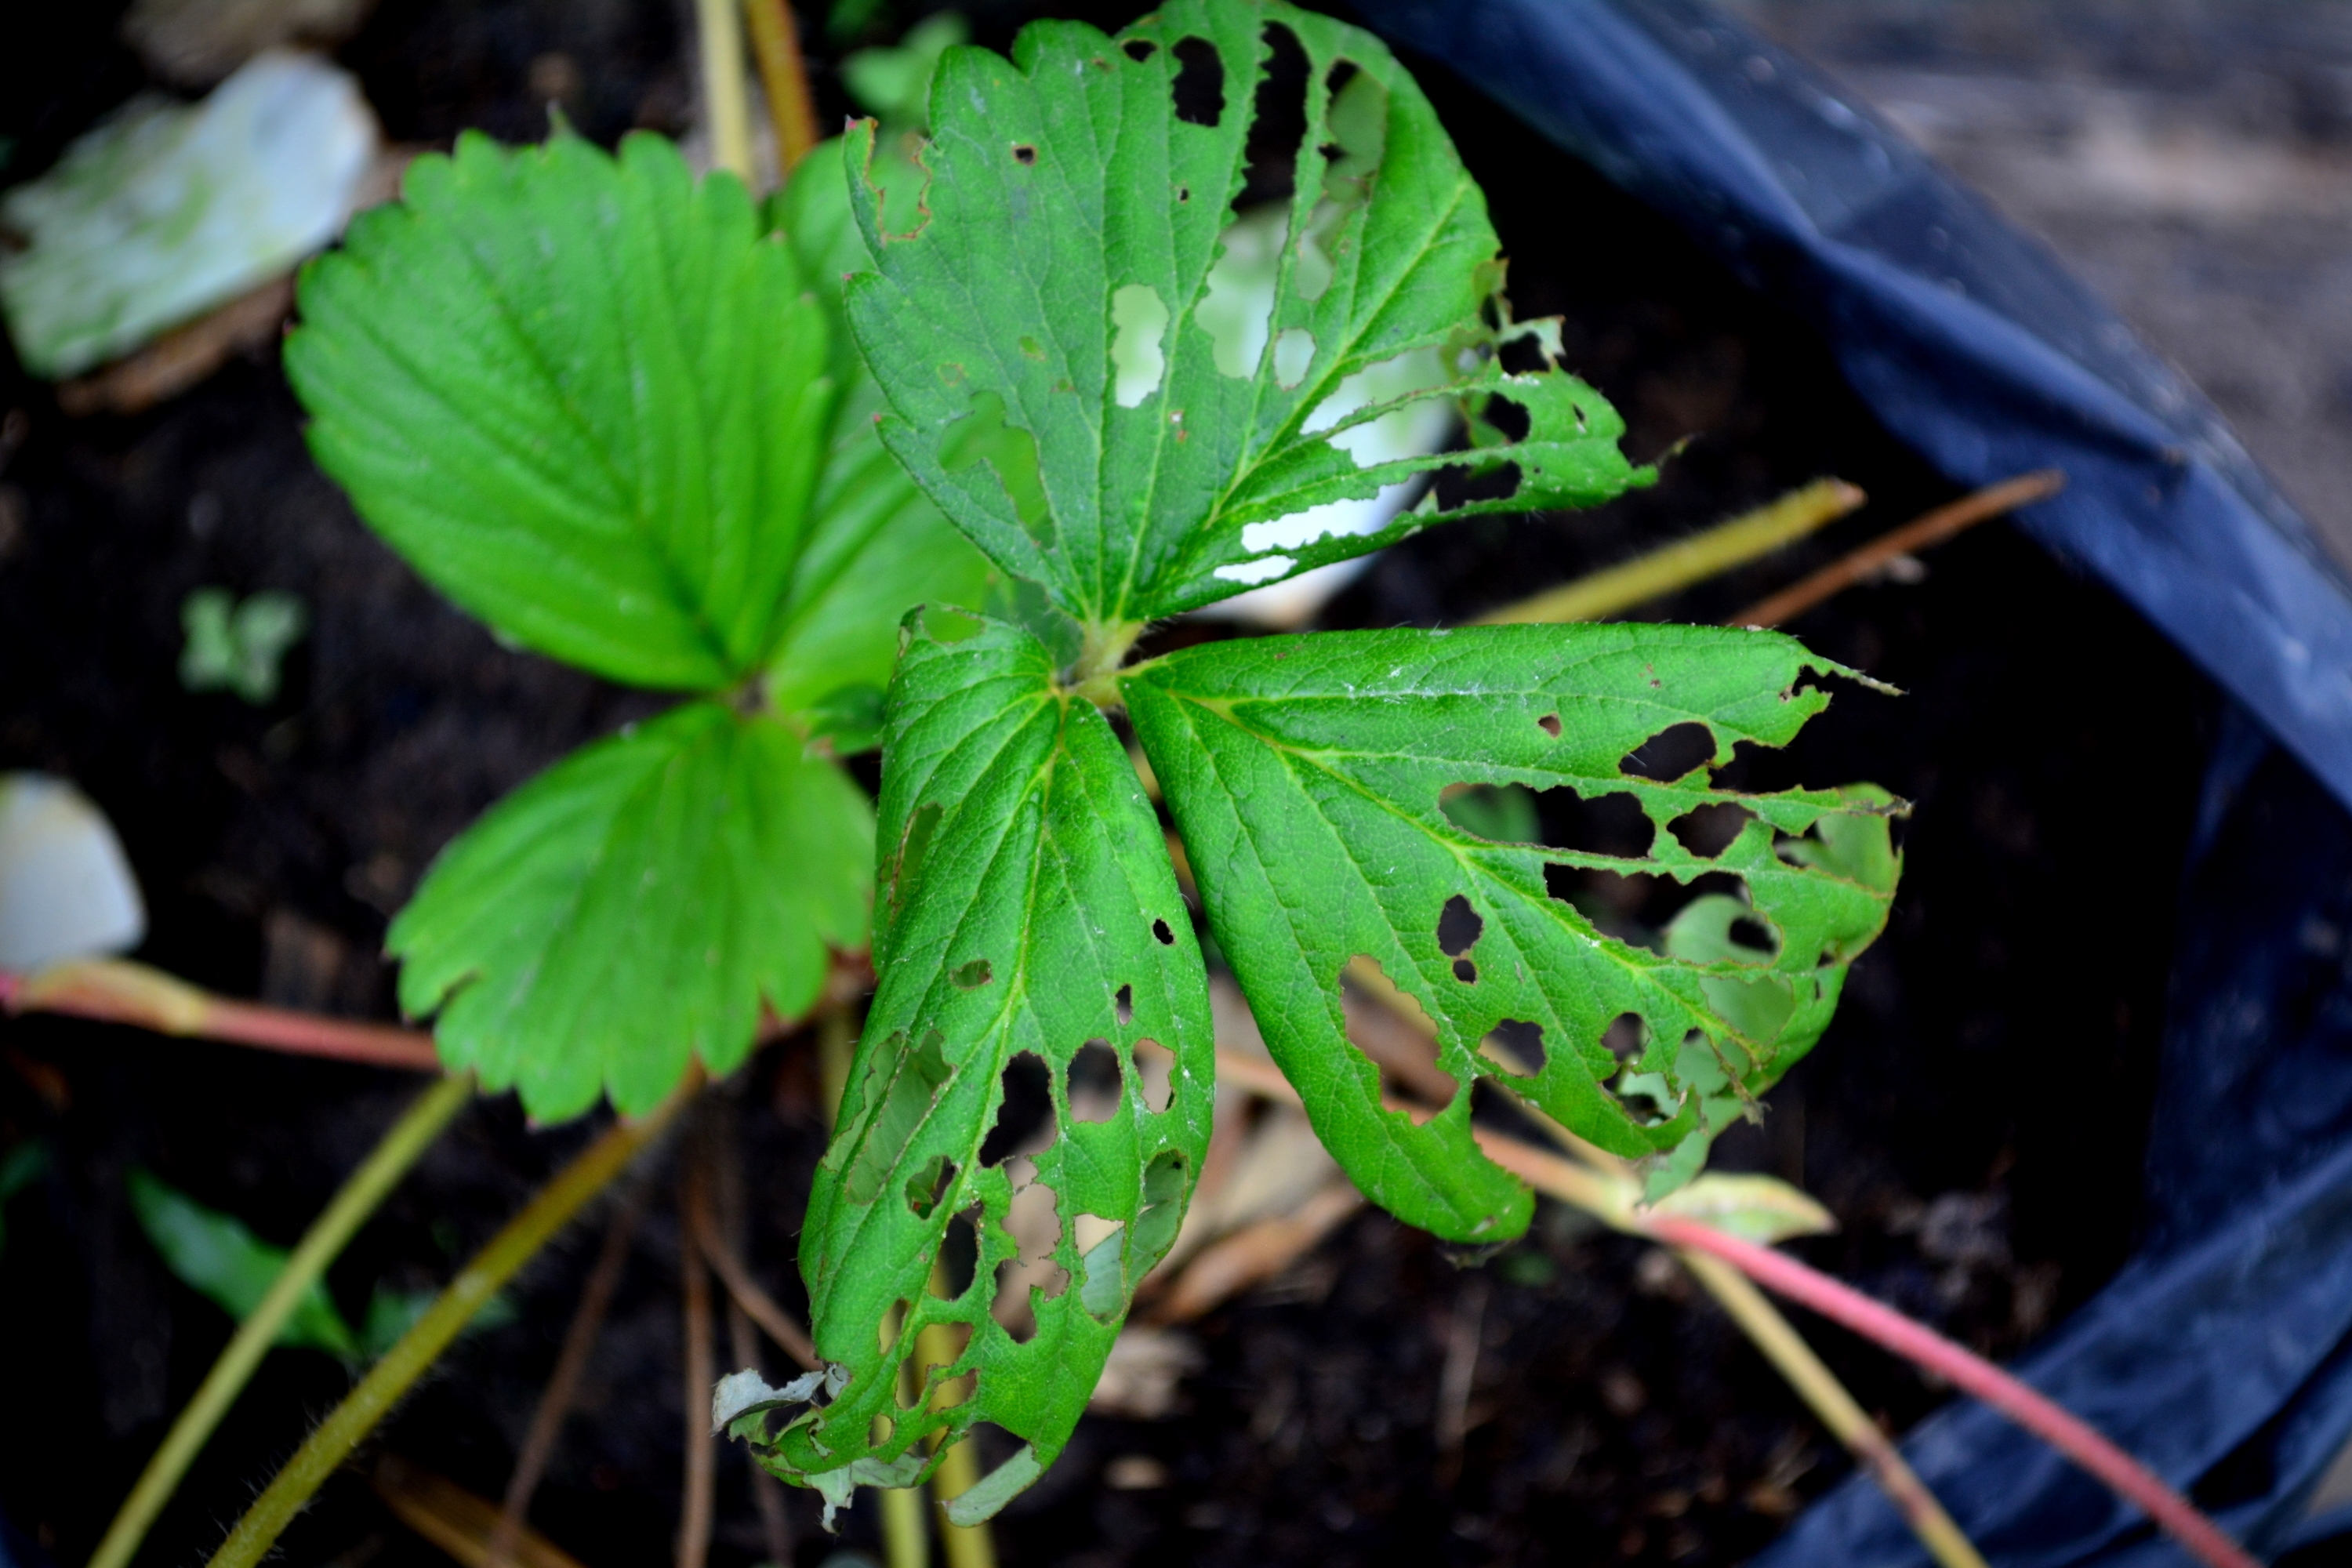 Slug damage on strawberry plant leaves.